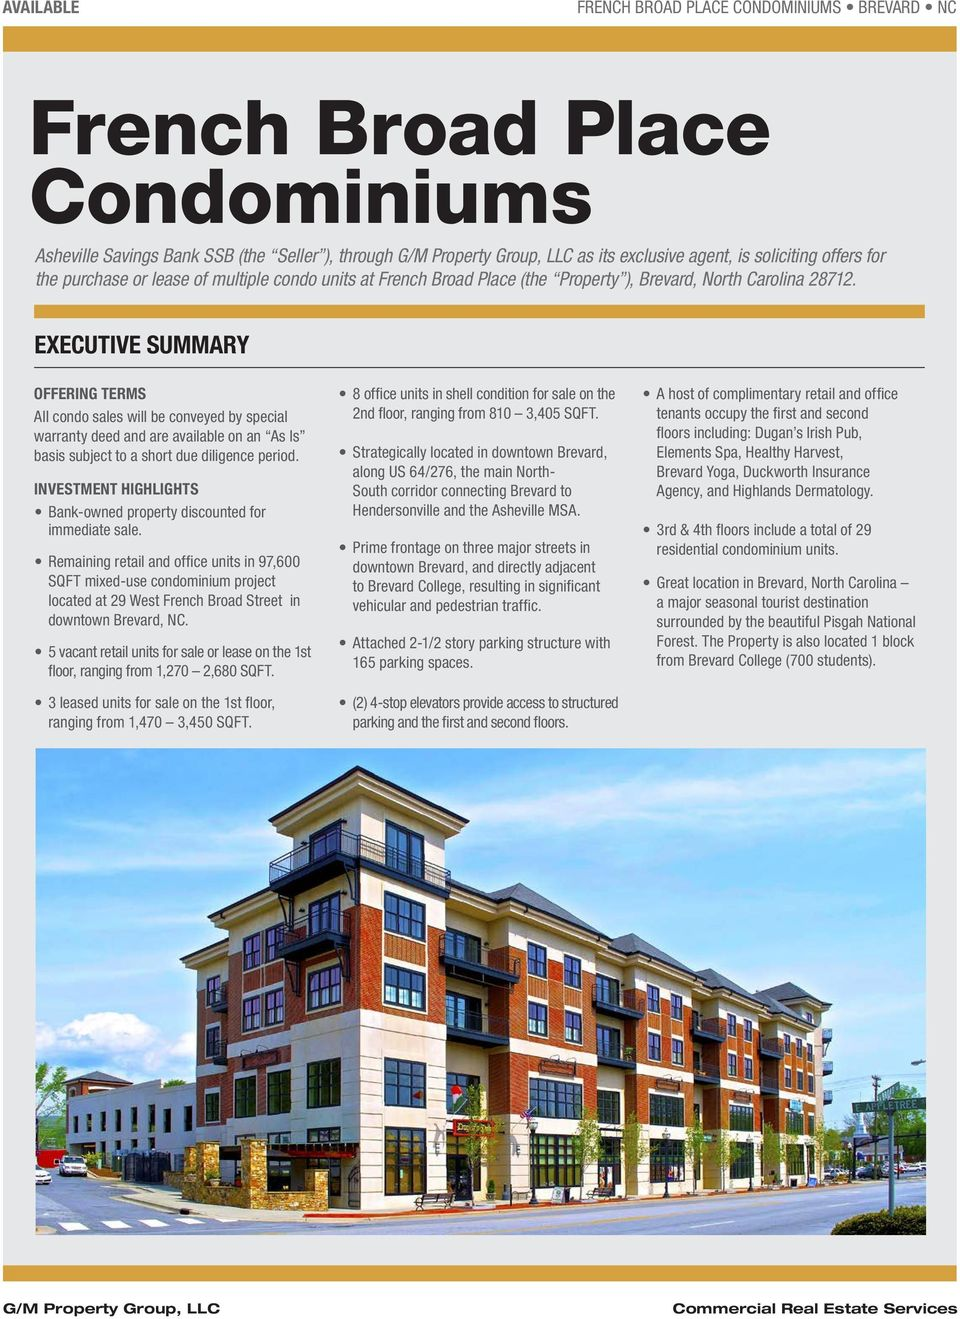 EXECUTIVE SUMMARY OFFERING TERMS All condo sales will be conveyed by special warranty deed and are available on an As Is basis subject to a short due diligence period.